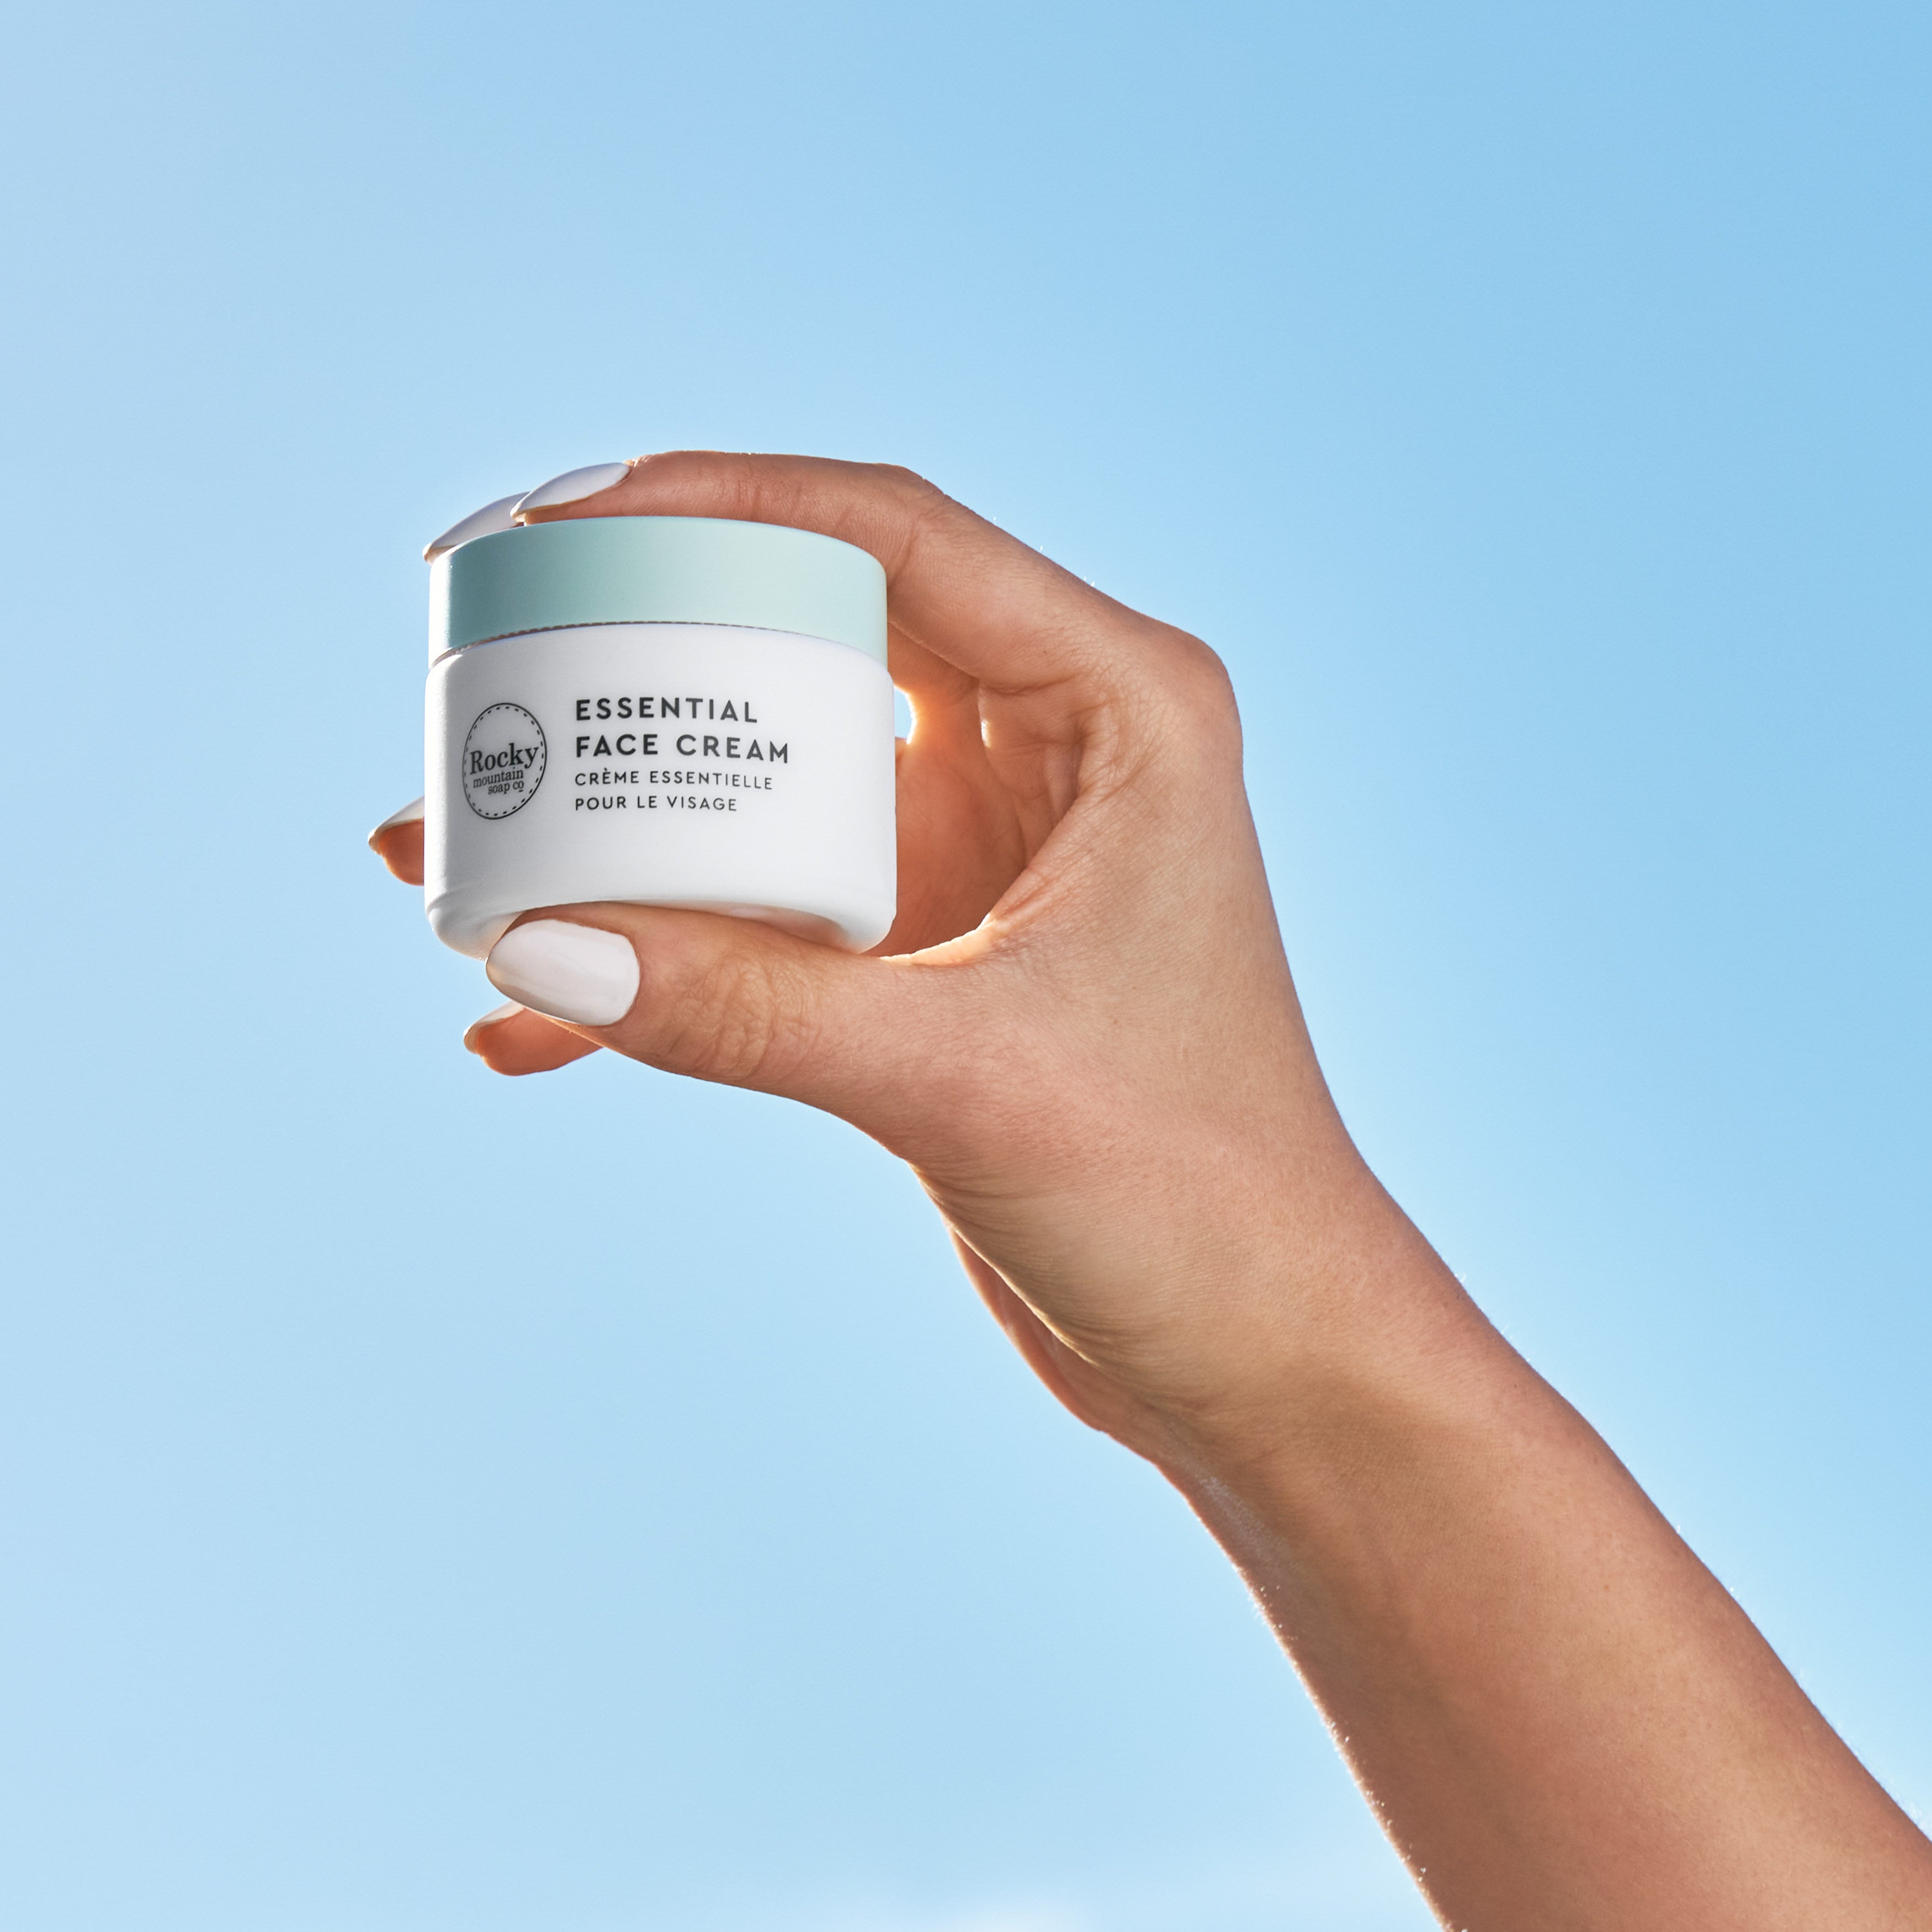 Image of natural face cream being held up to the sky.